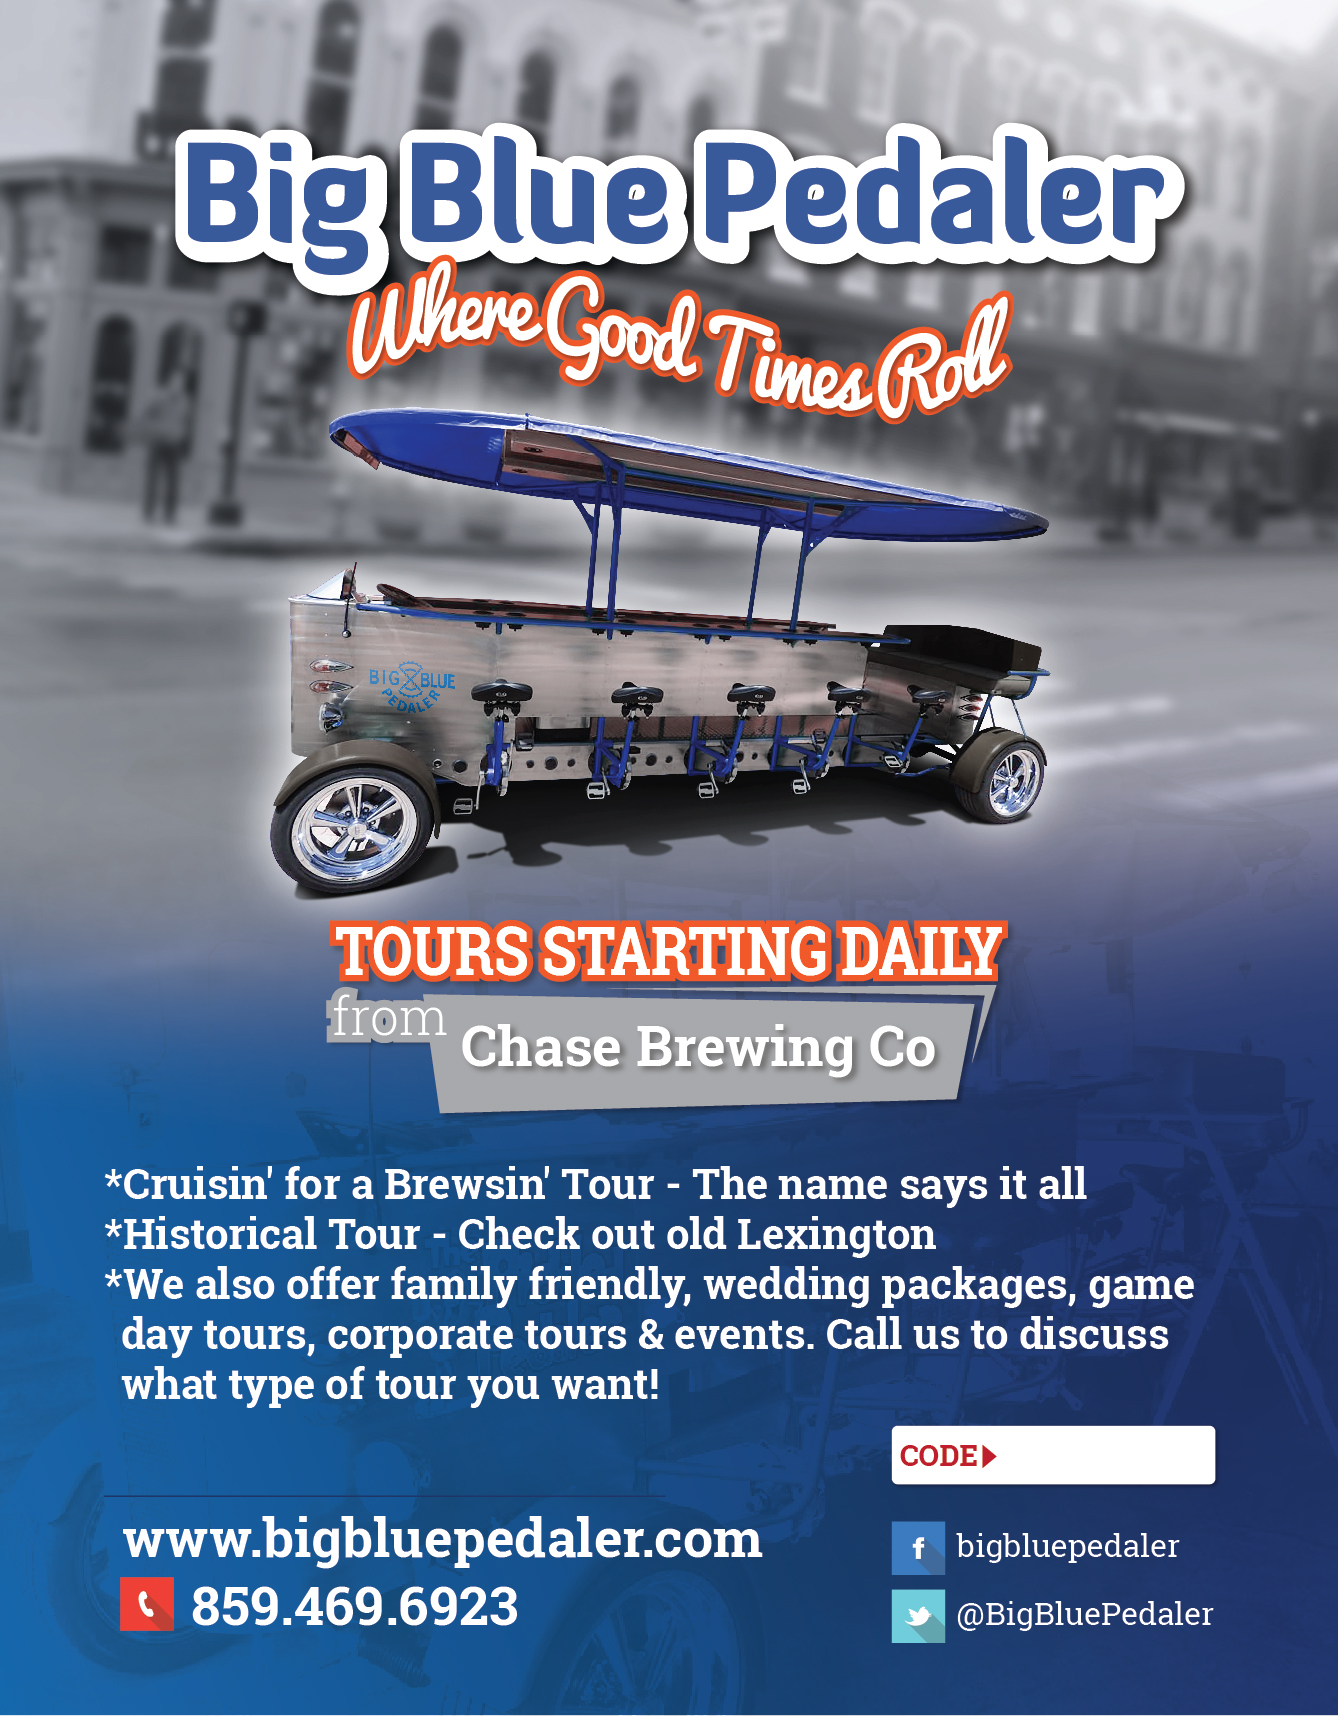 Flyer for pedal pub company - Entertainment